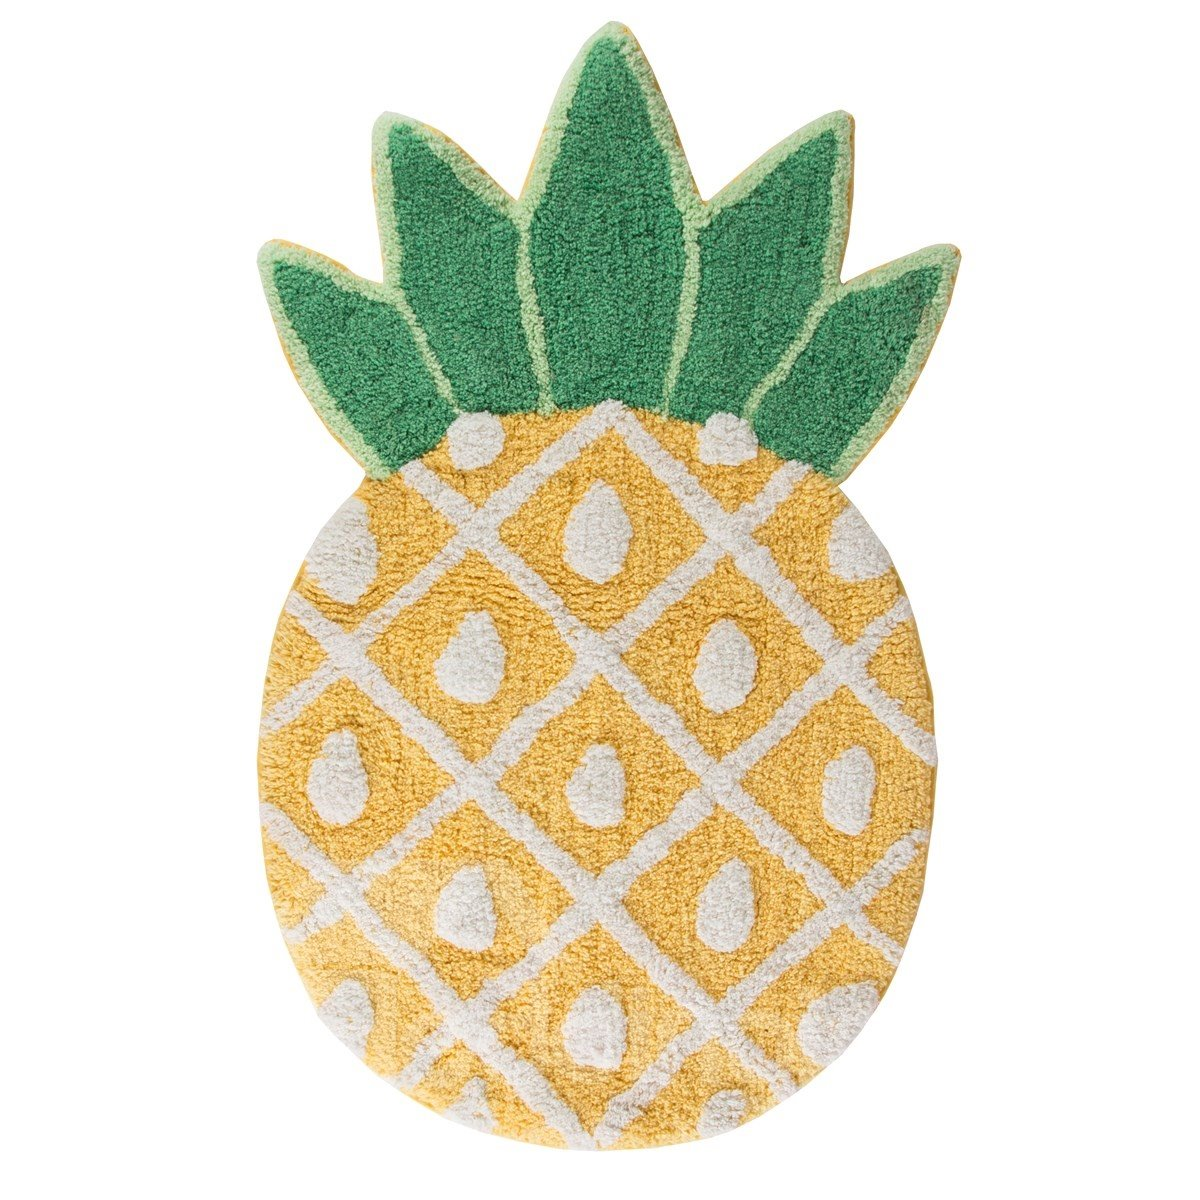 33*19in Pineapple Pattern Cotton Water Absorption and Nonslip Area Rug